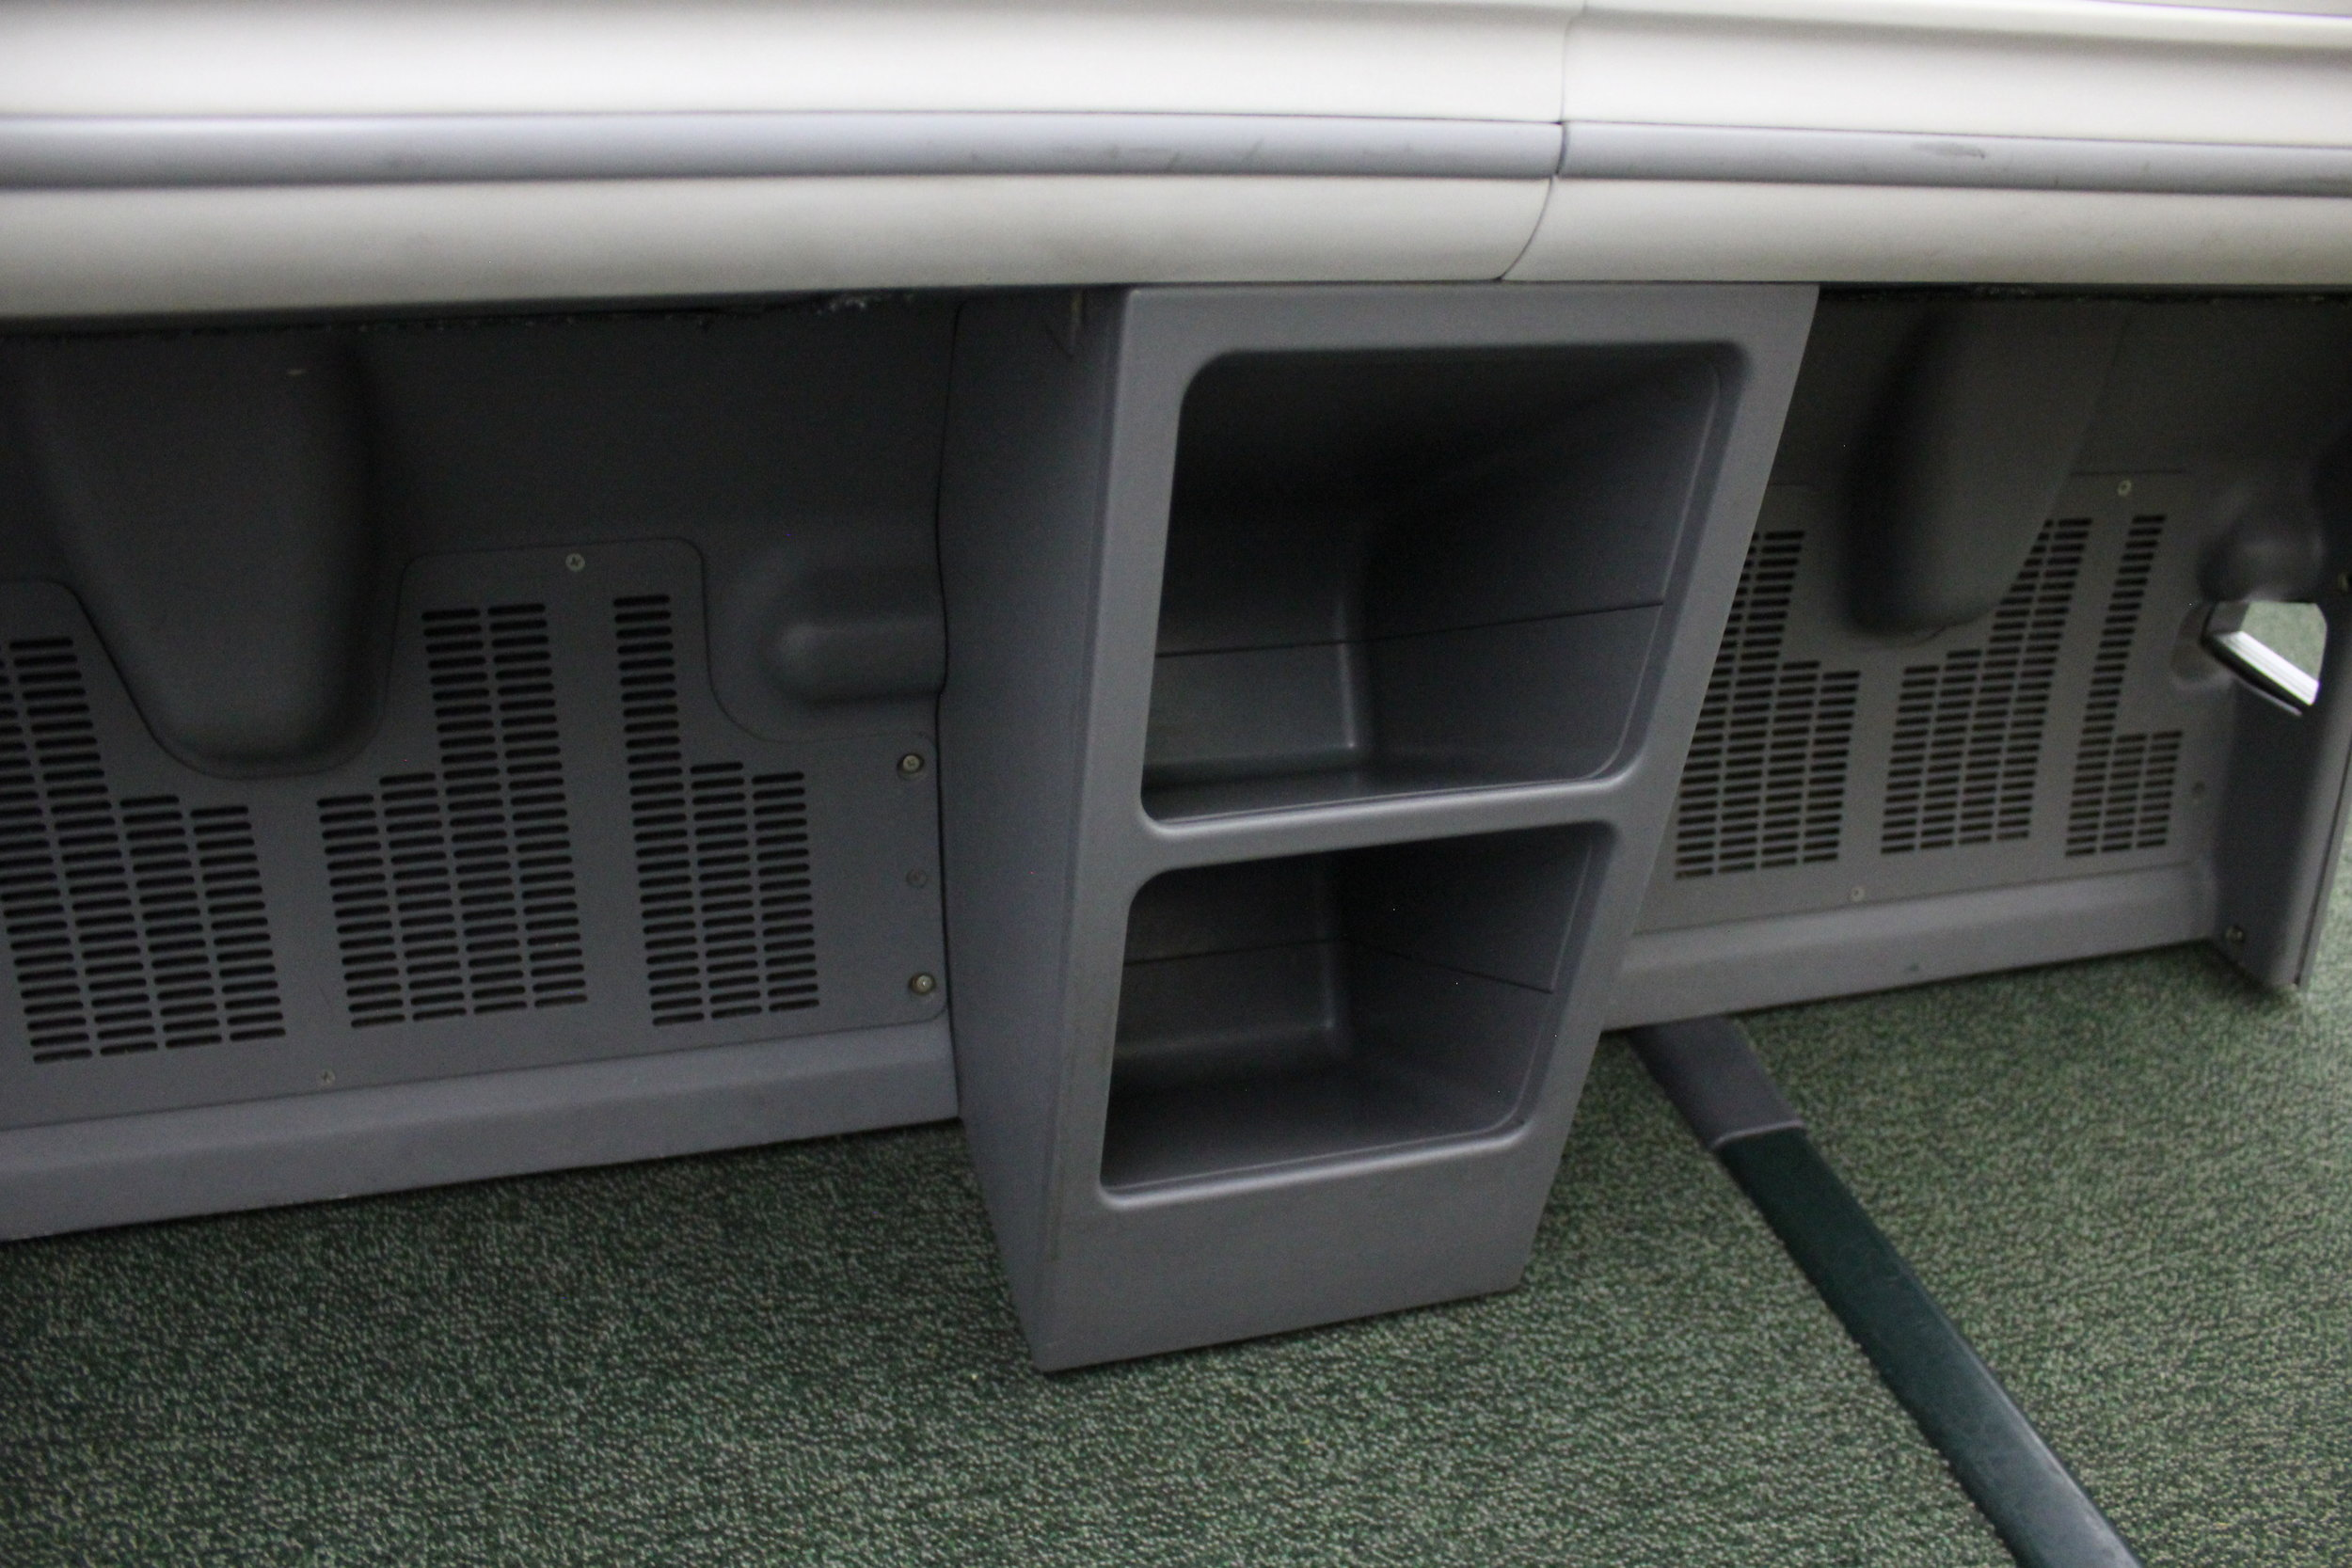 Ethiopian Airlines business class – Storage compartments